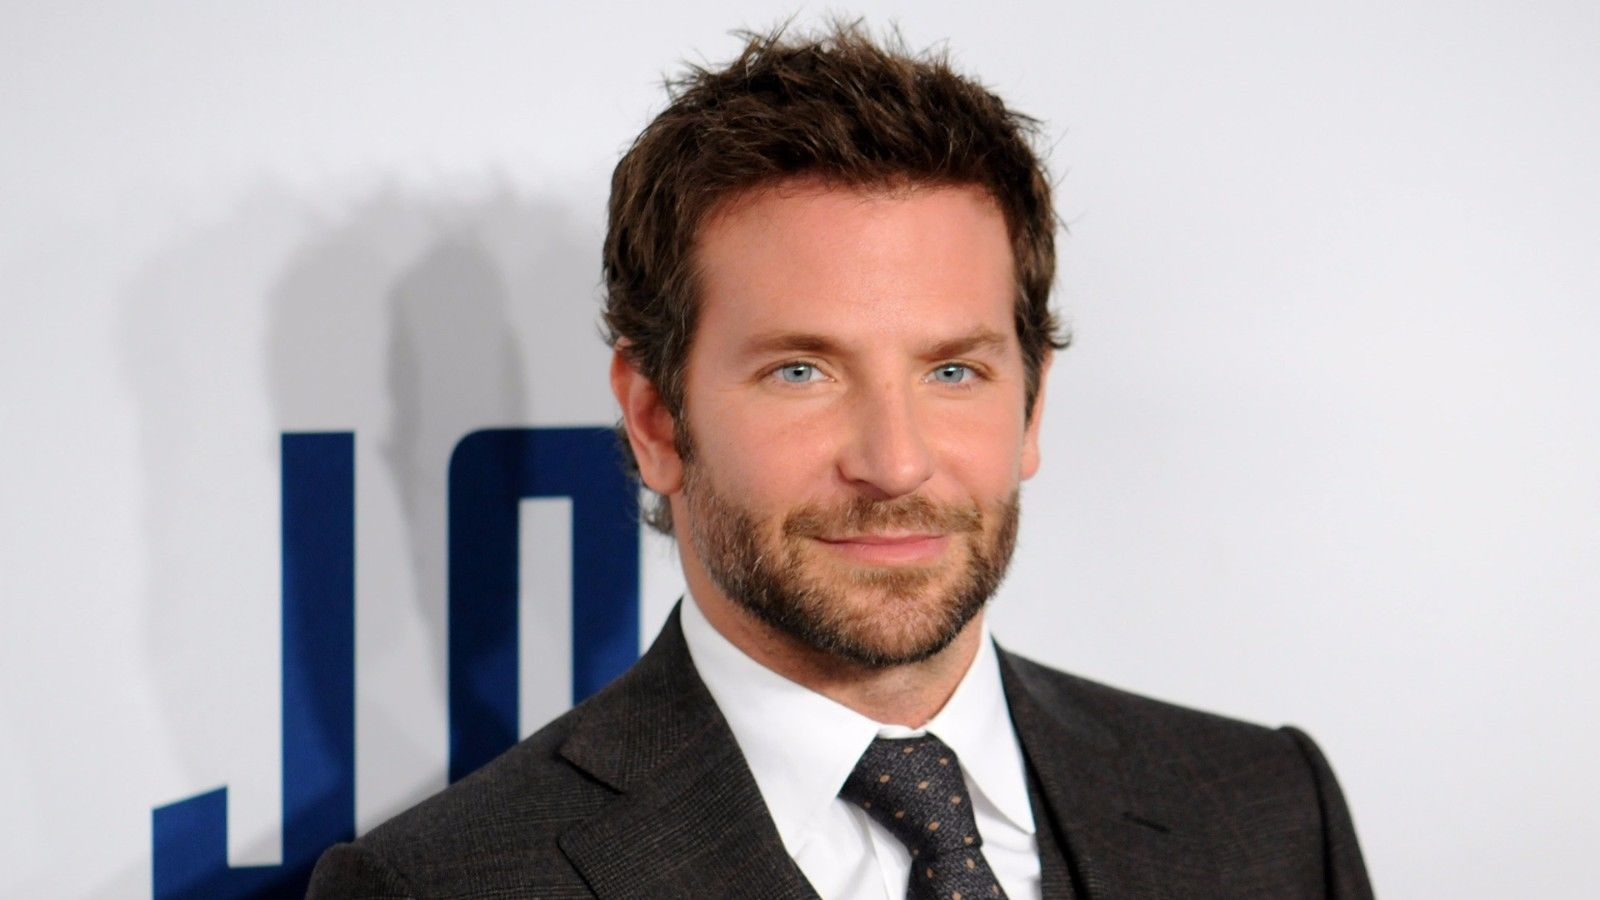 Primary image for BRADLEY COOPER 24 x 36 inch Poster | ready to ship |